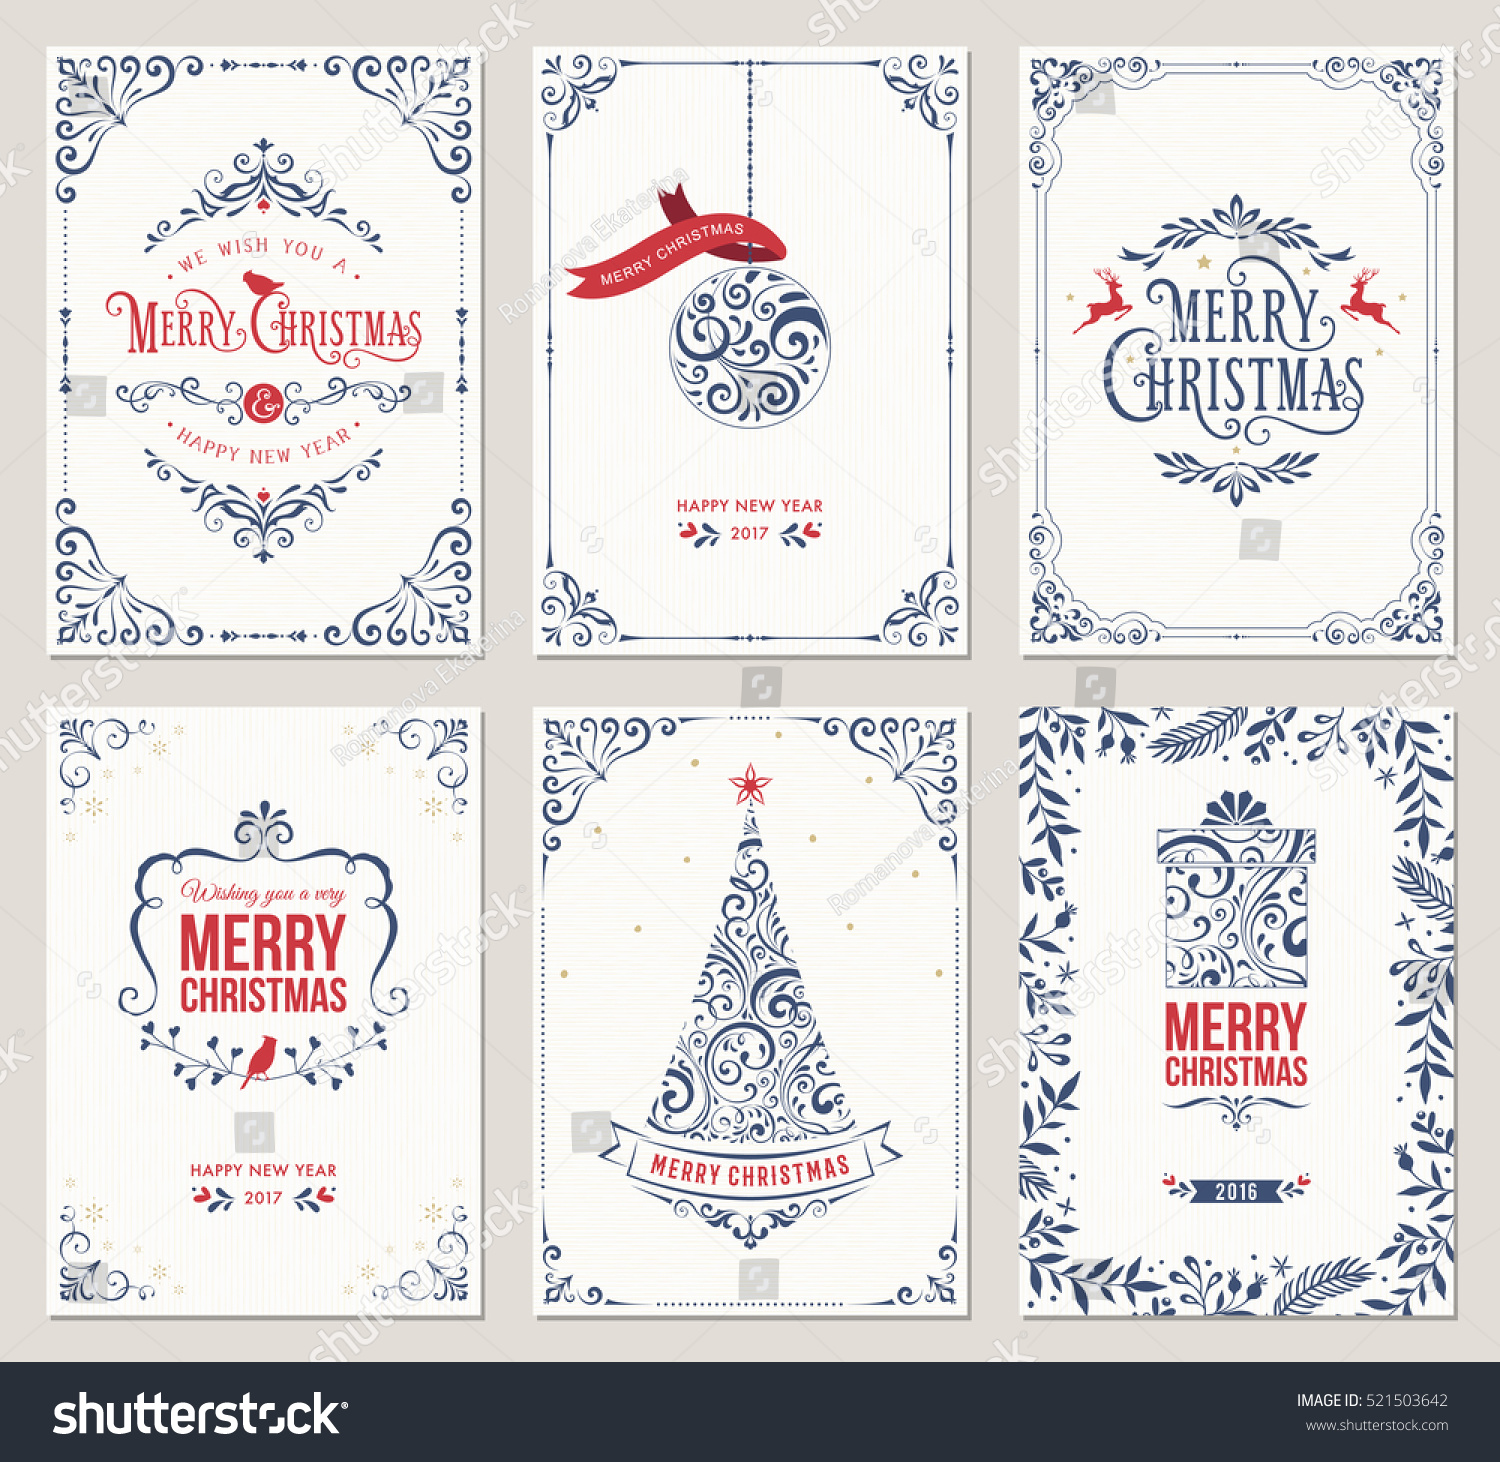 Ornate vertical winter holidays greeting cards with New Year tree, gift box, Christmas ornaments and typographic design.Vector illustration. #521503642